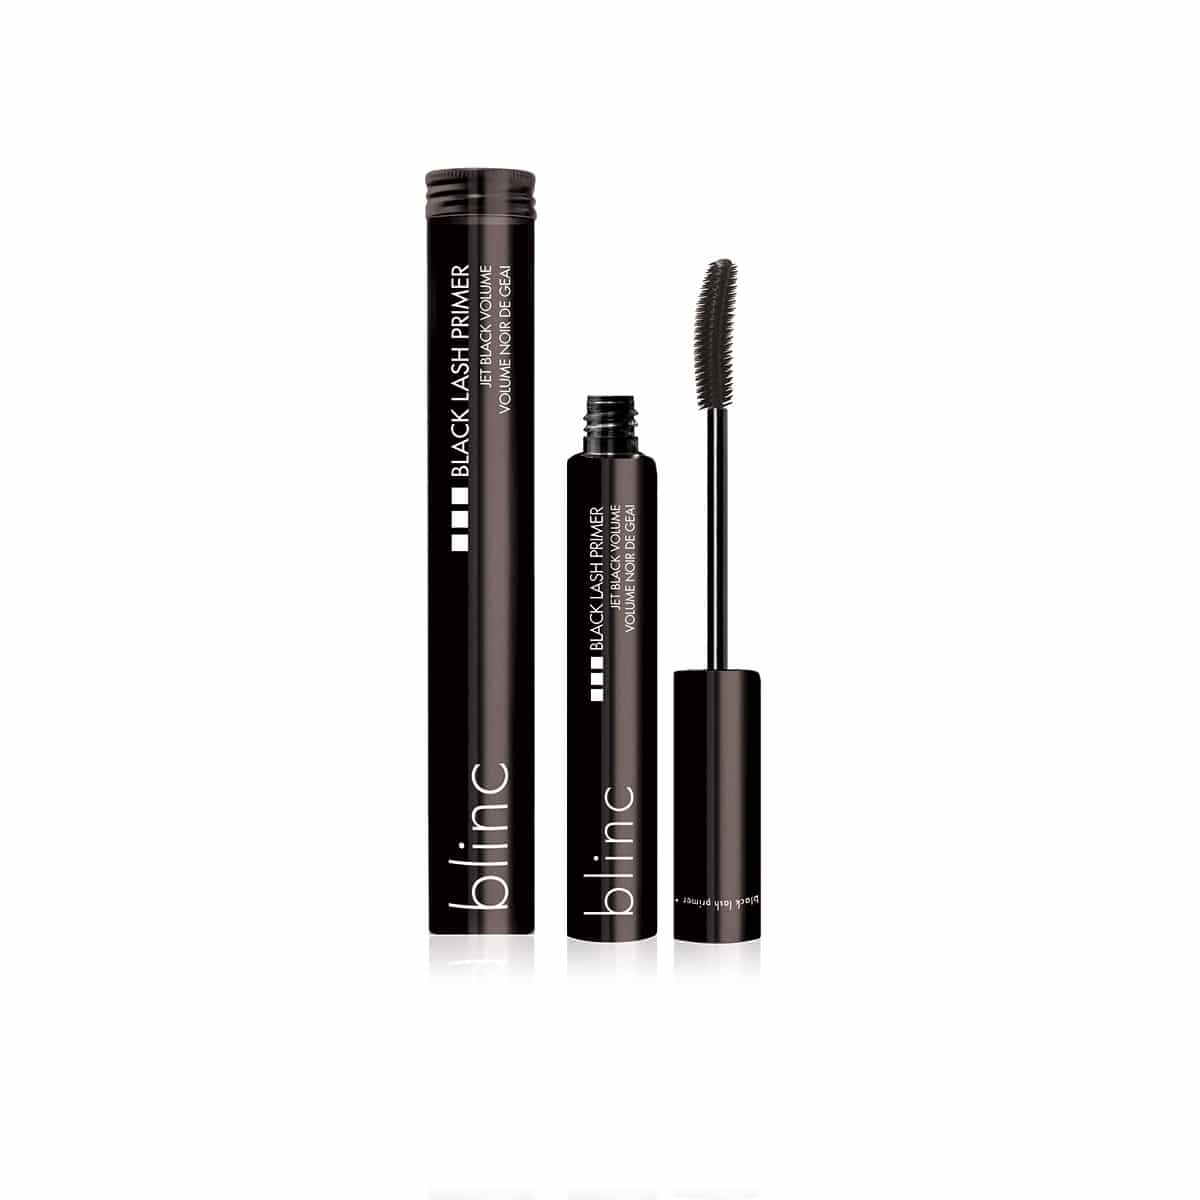 Blinc Lash Primer - Black - The Beauty Lounge